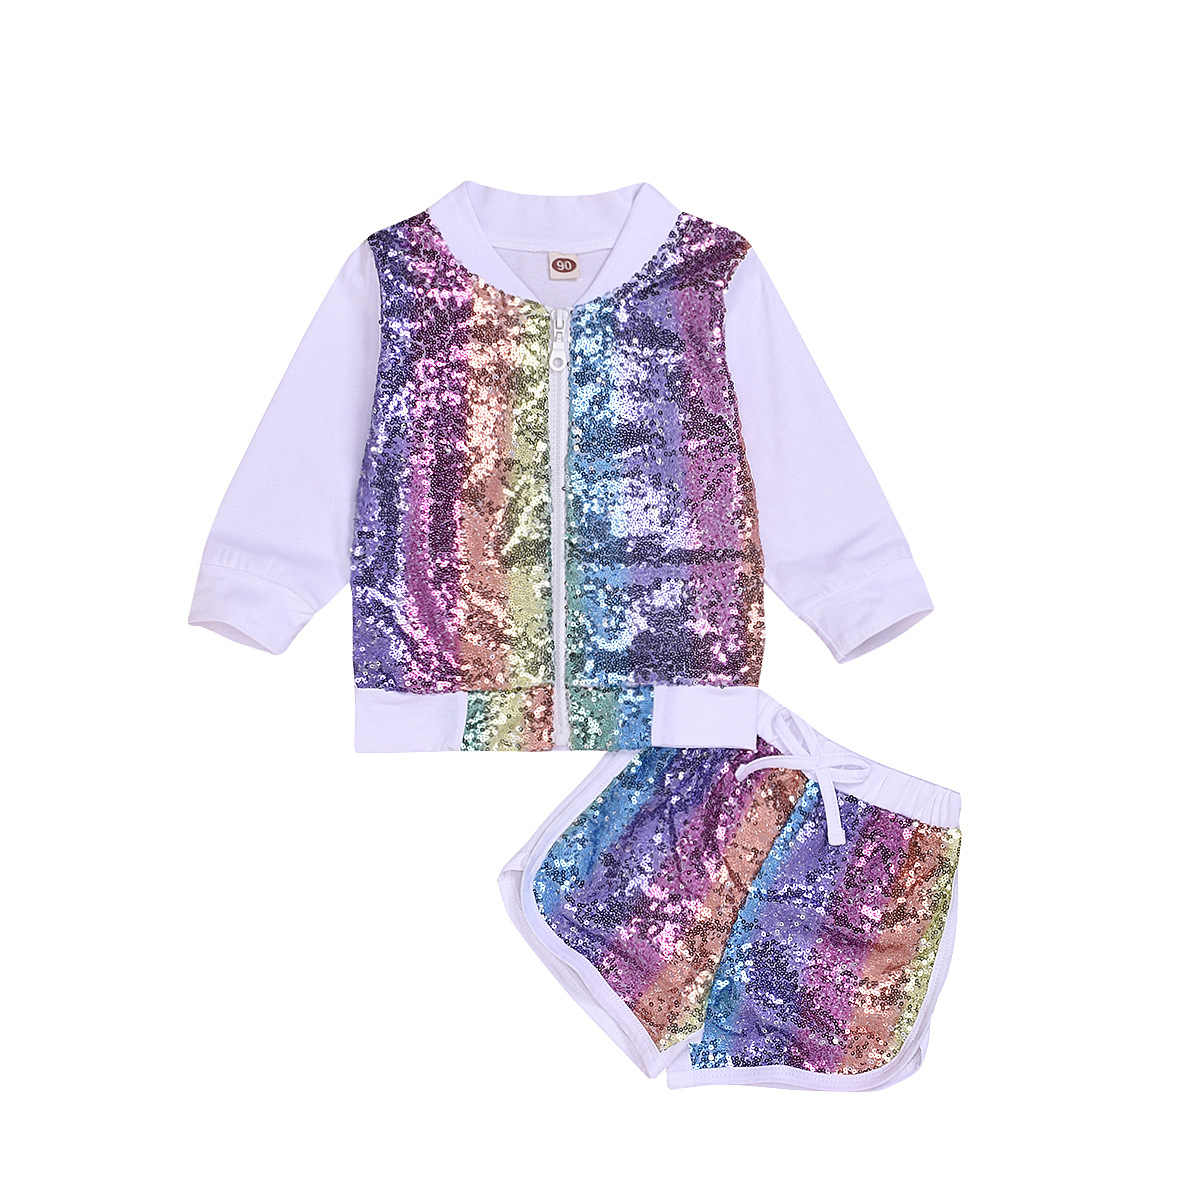 chifuna New Fashion Rainbow Letter Sport Sets T-shirt+shorts Baby Boutique Toddler Summer Outfit Little Girls Clothes For Boy